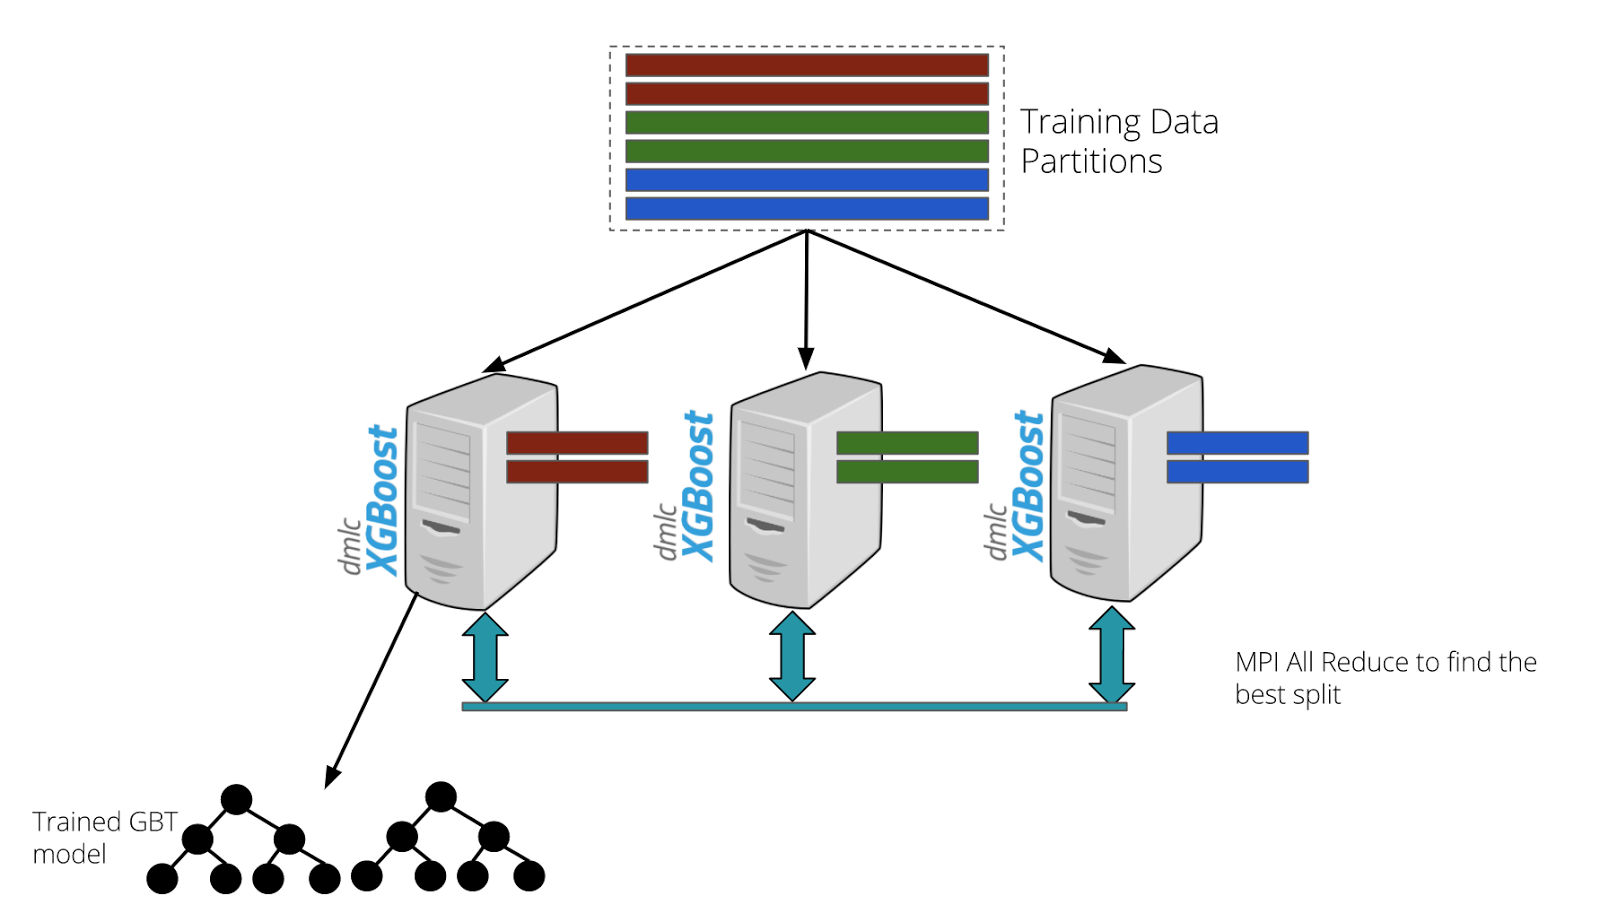 Figure 2. The GBT models are trained using a data parallel approach using distributed xgboost. The training process is fault-tolerant and includes hyperparameter selection using k-fold cross validation.